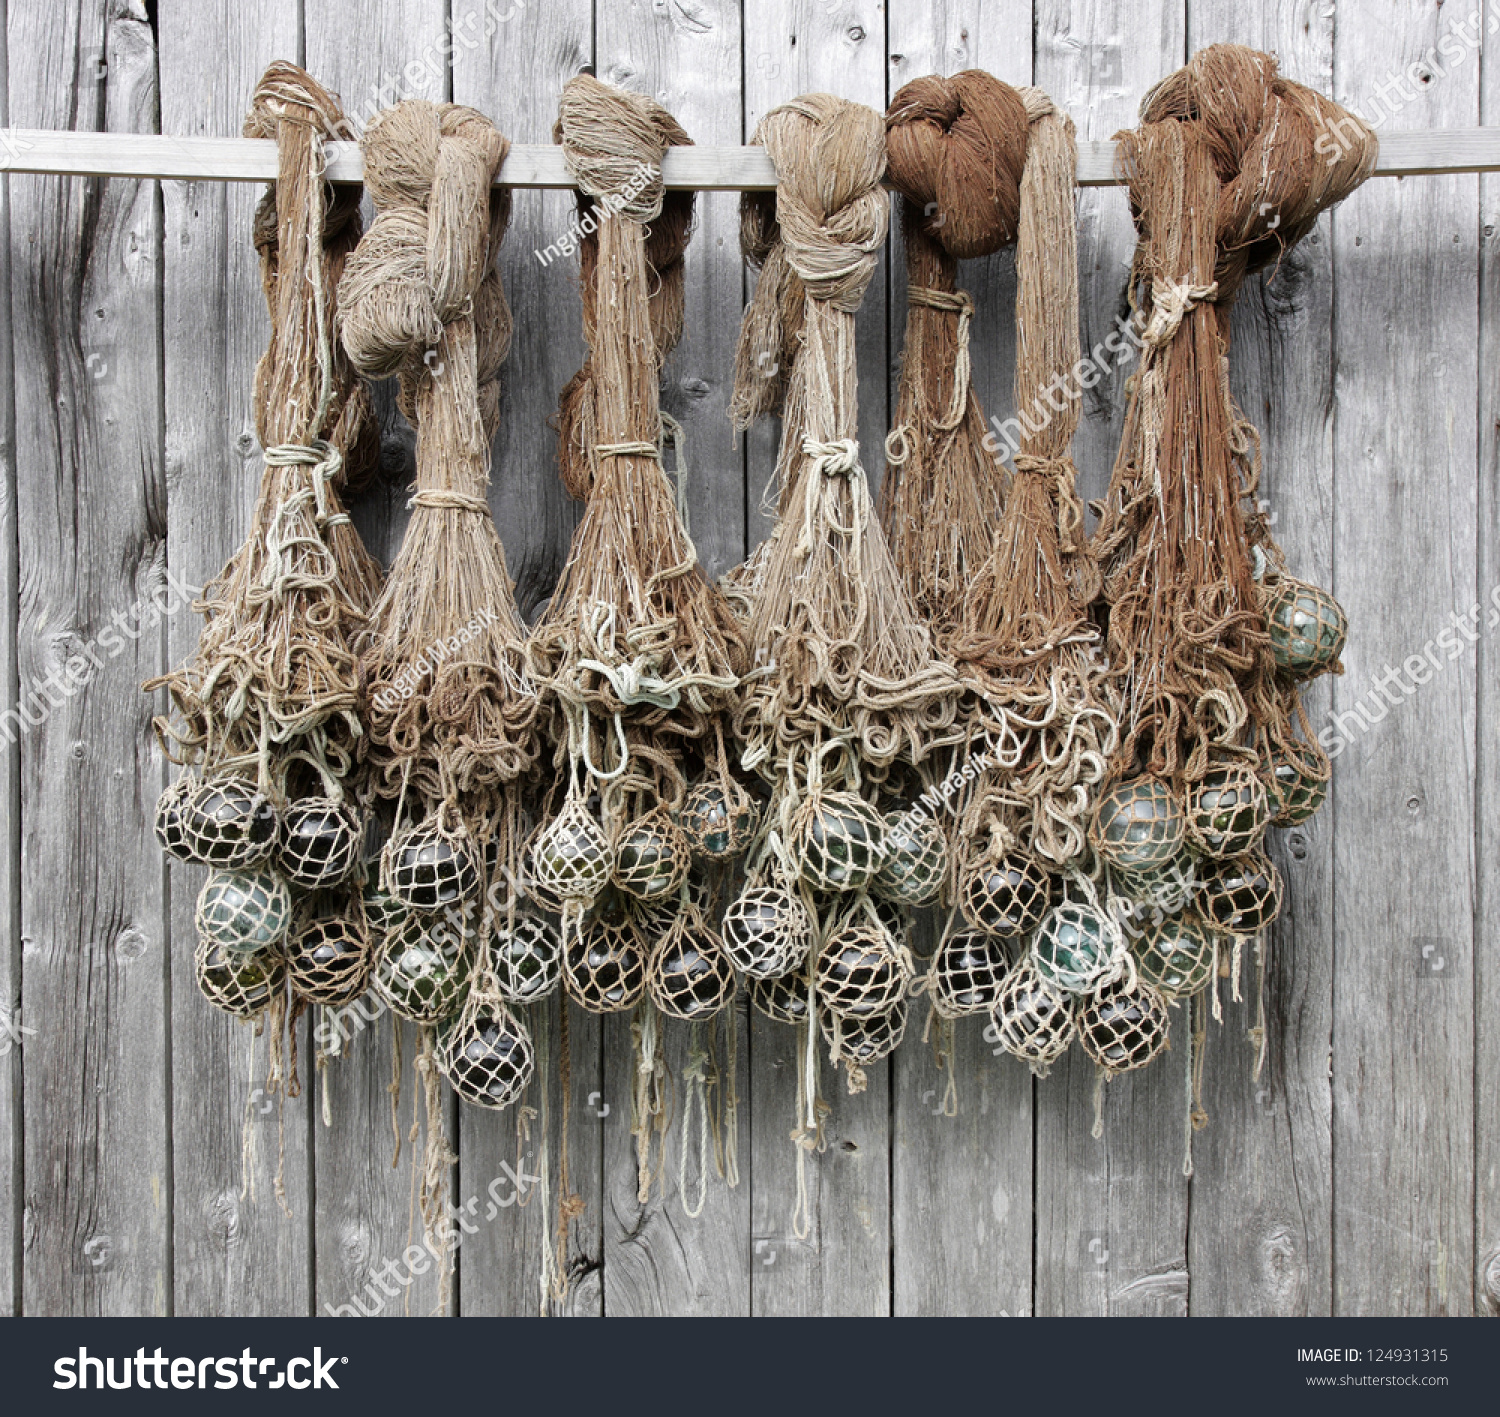 Old fishing nets glass floats hanging stock photo for Fishing net for sale